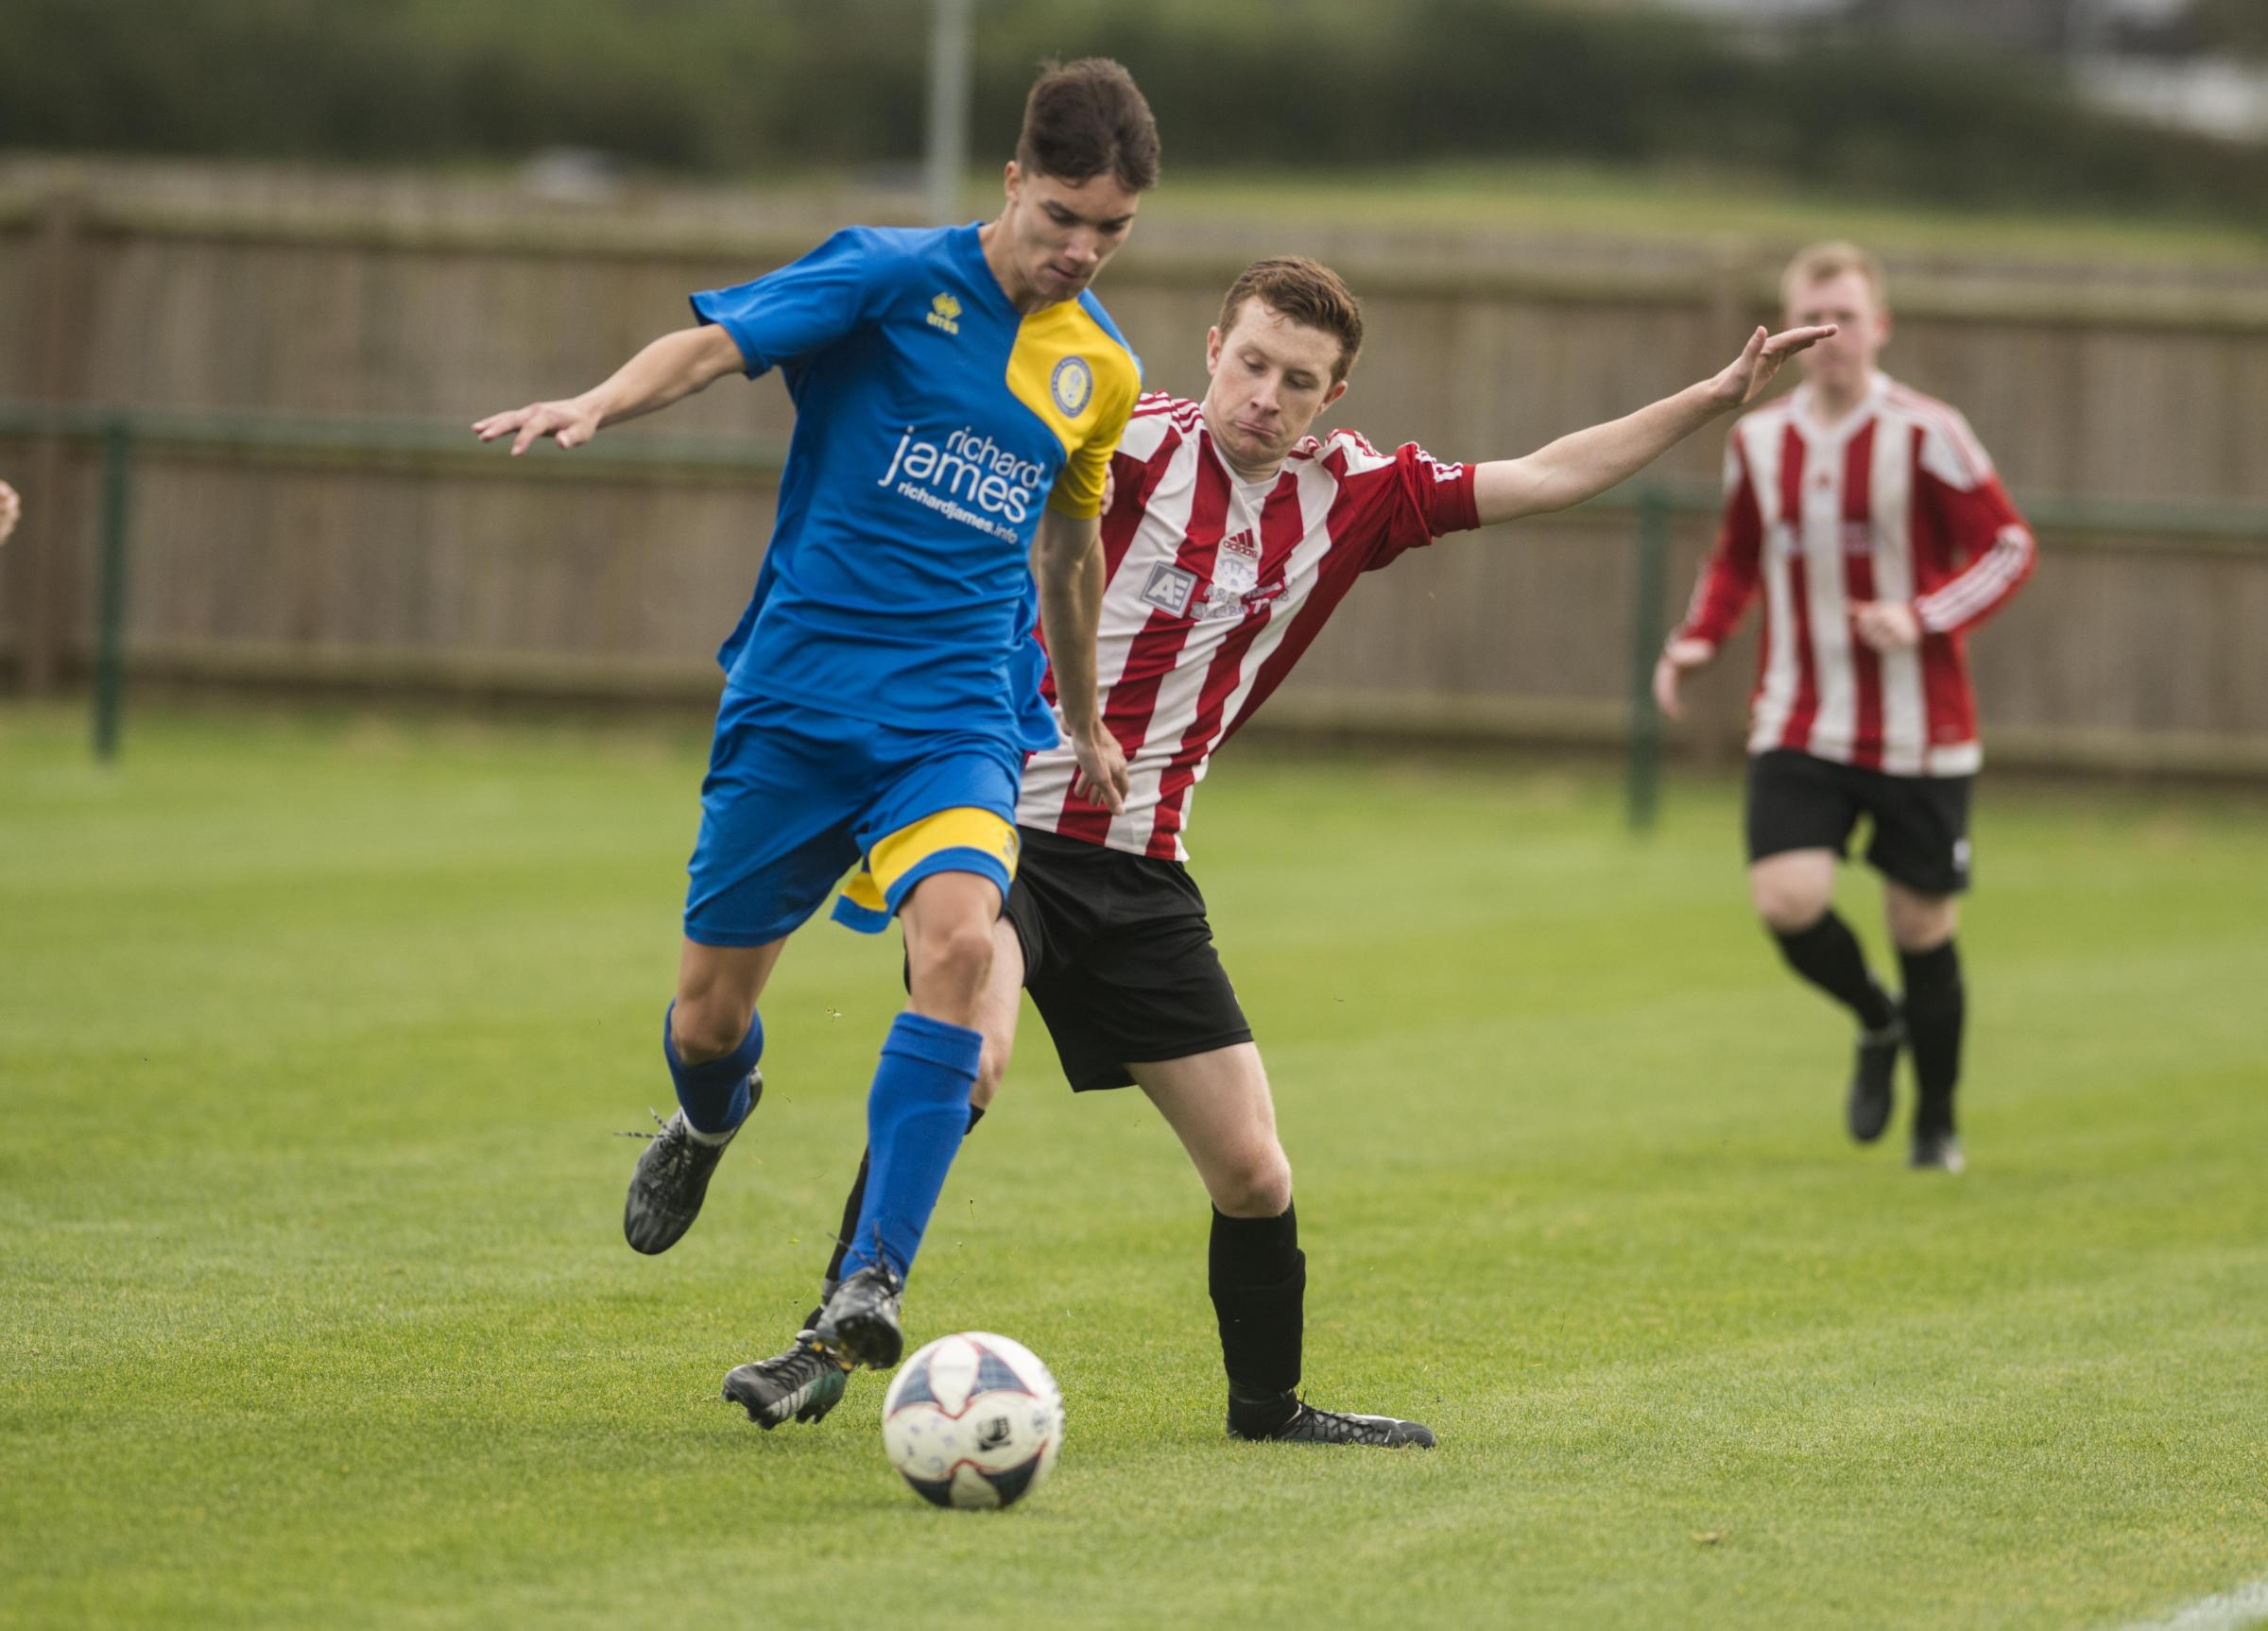 Royal Wootton Bassett Development's Josh Harris (blue) is challenged by Devizes Town Reserves' Jamie Hall during Saturday's clash Picture: CLARE GREEN